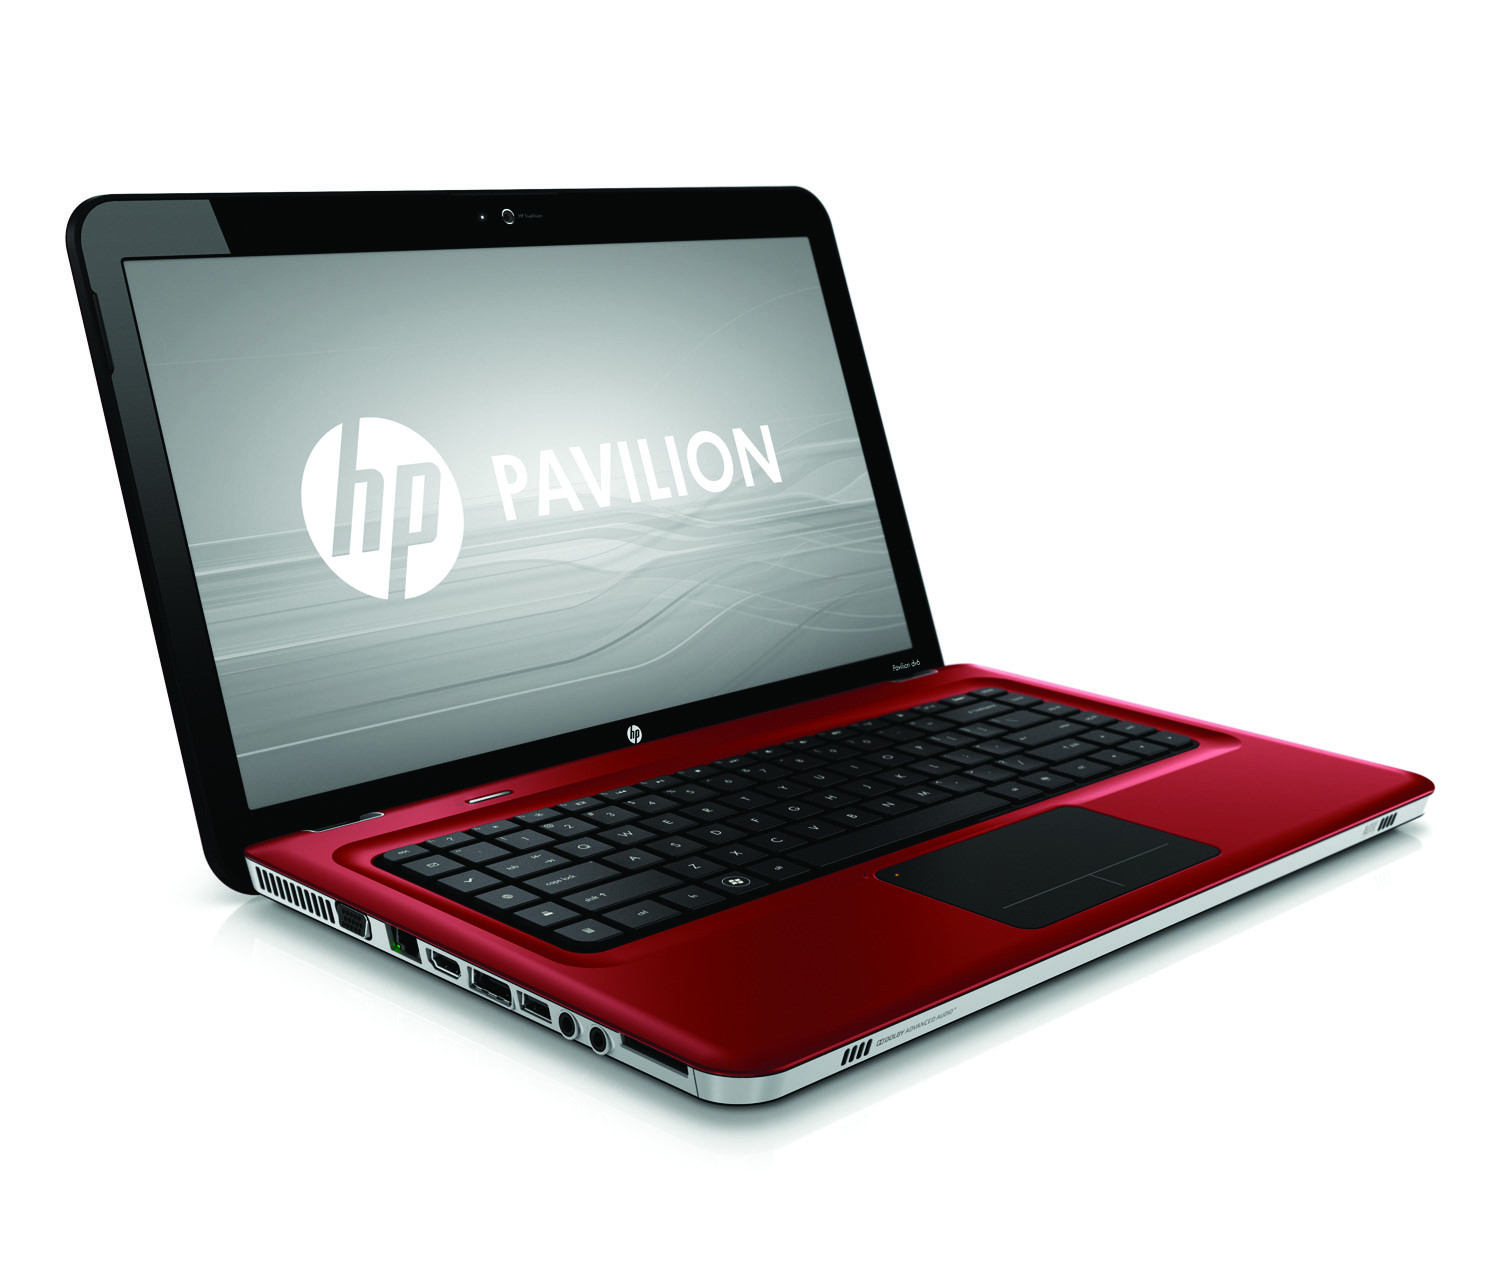 HP Pavilion dv6 Entertainment PC, sonoma red, front right open